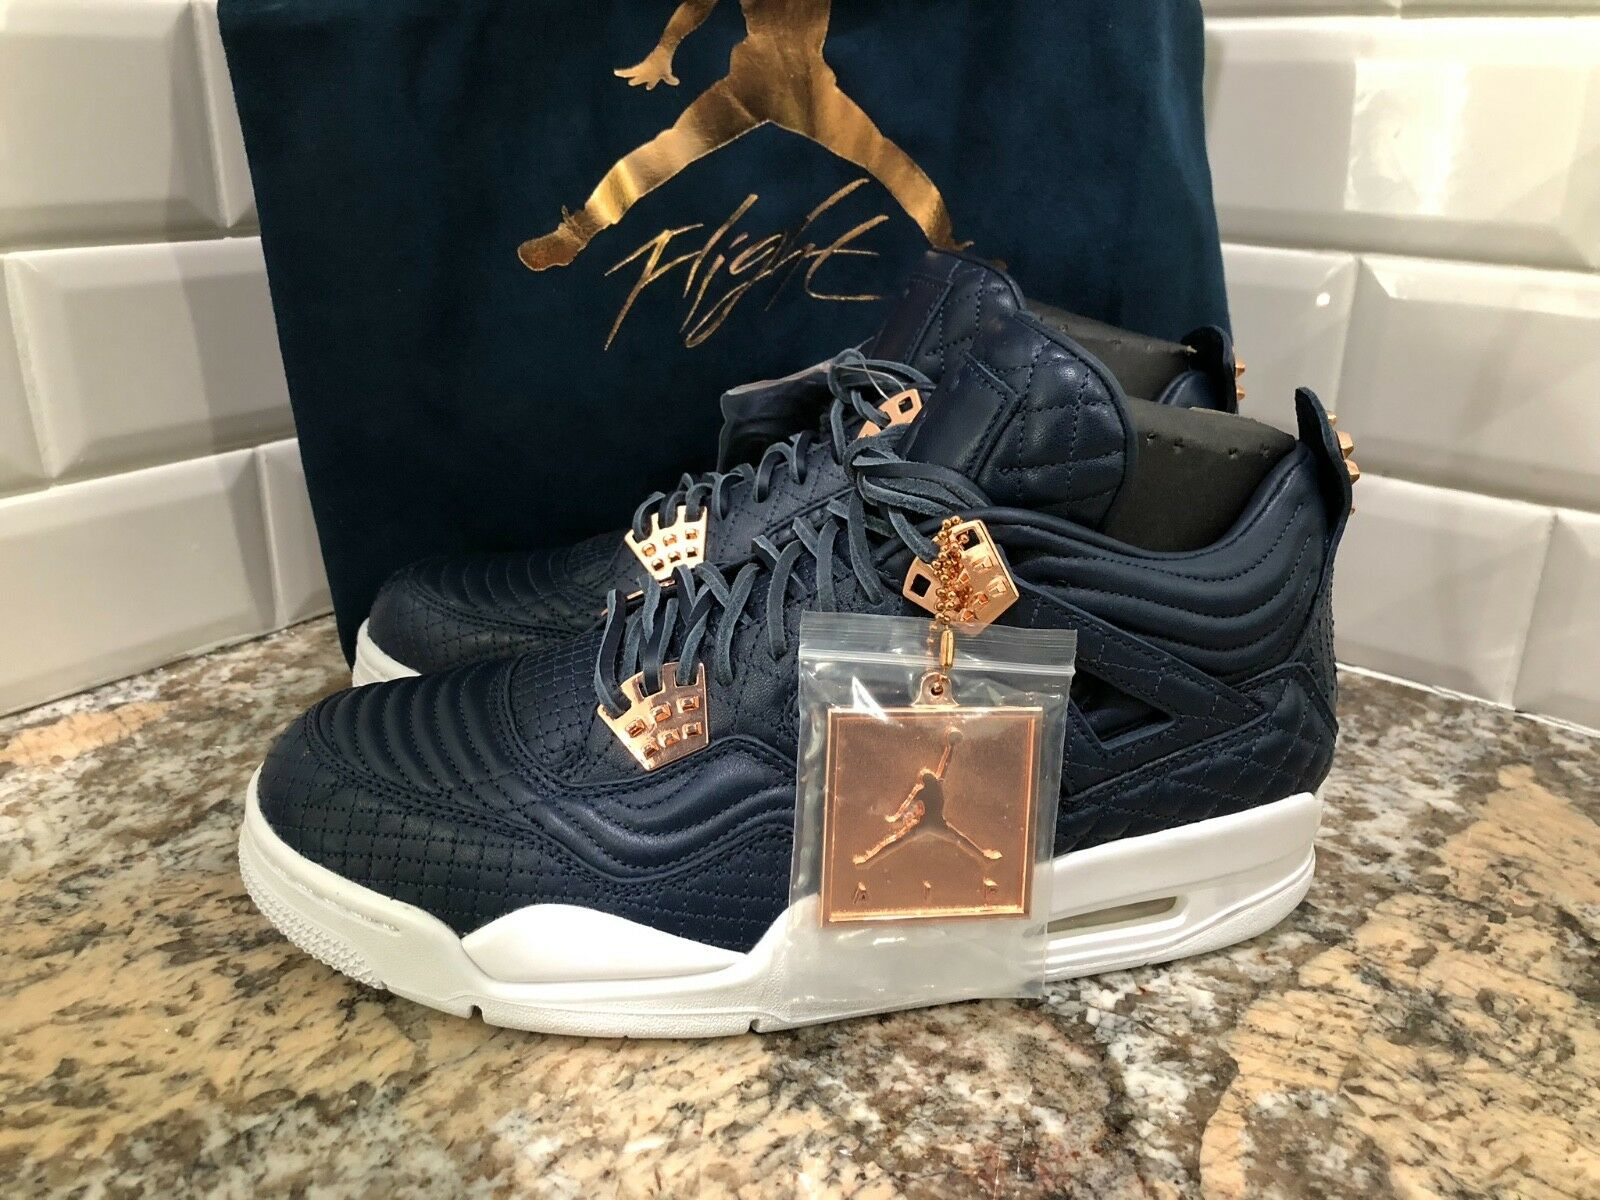 Nike Air Jordan 4 IV Retro Premium Obsidian Pinnacle Rose Doré 819139-402 SZ 9.5